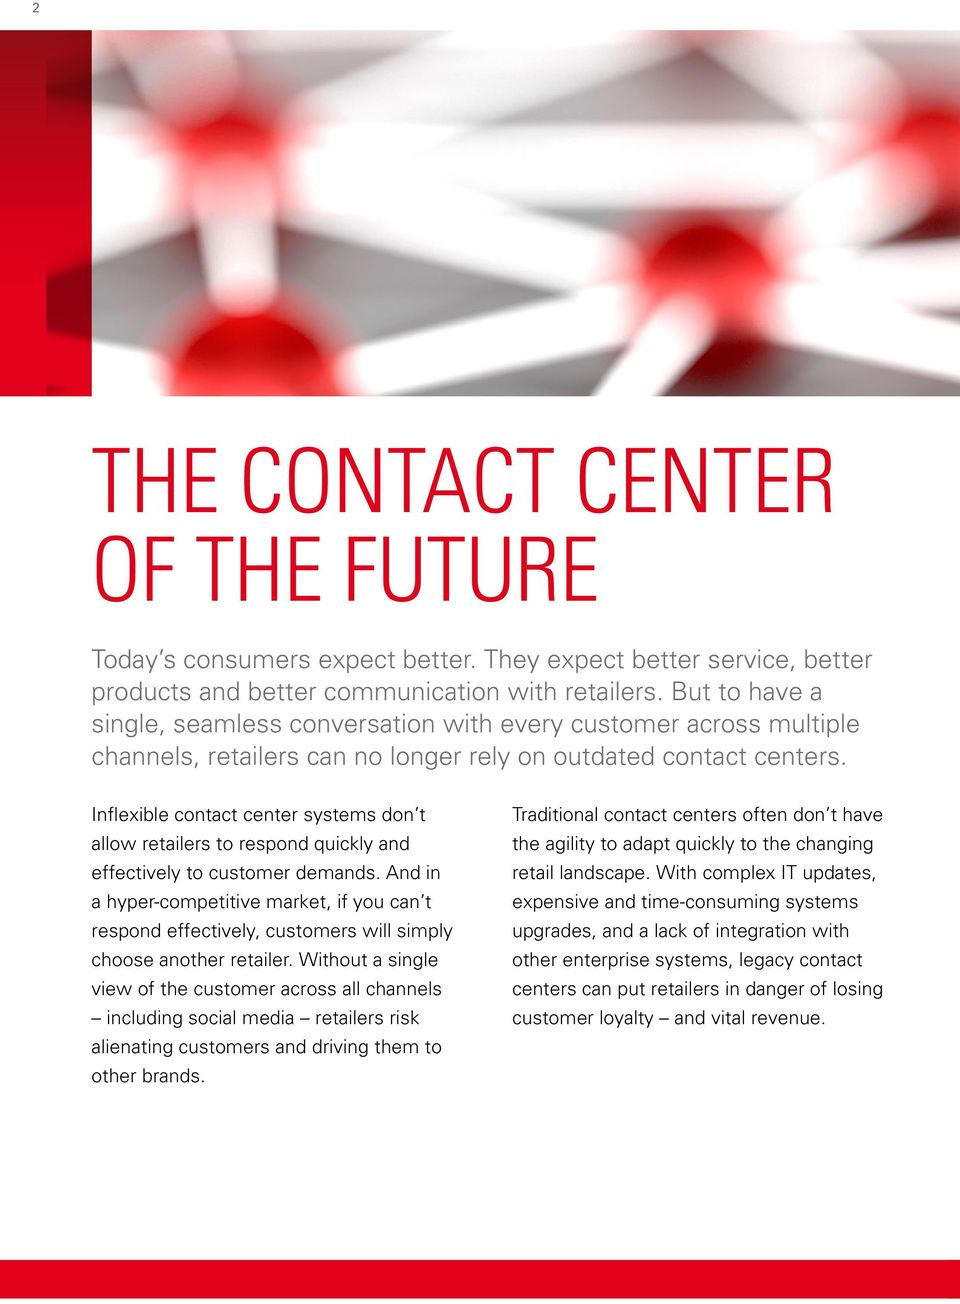 Inflexible contact center systems don t allow retailers to respond quickly and effectively to customer demands.